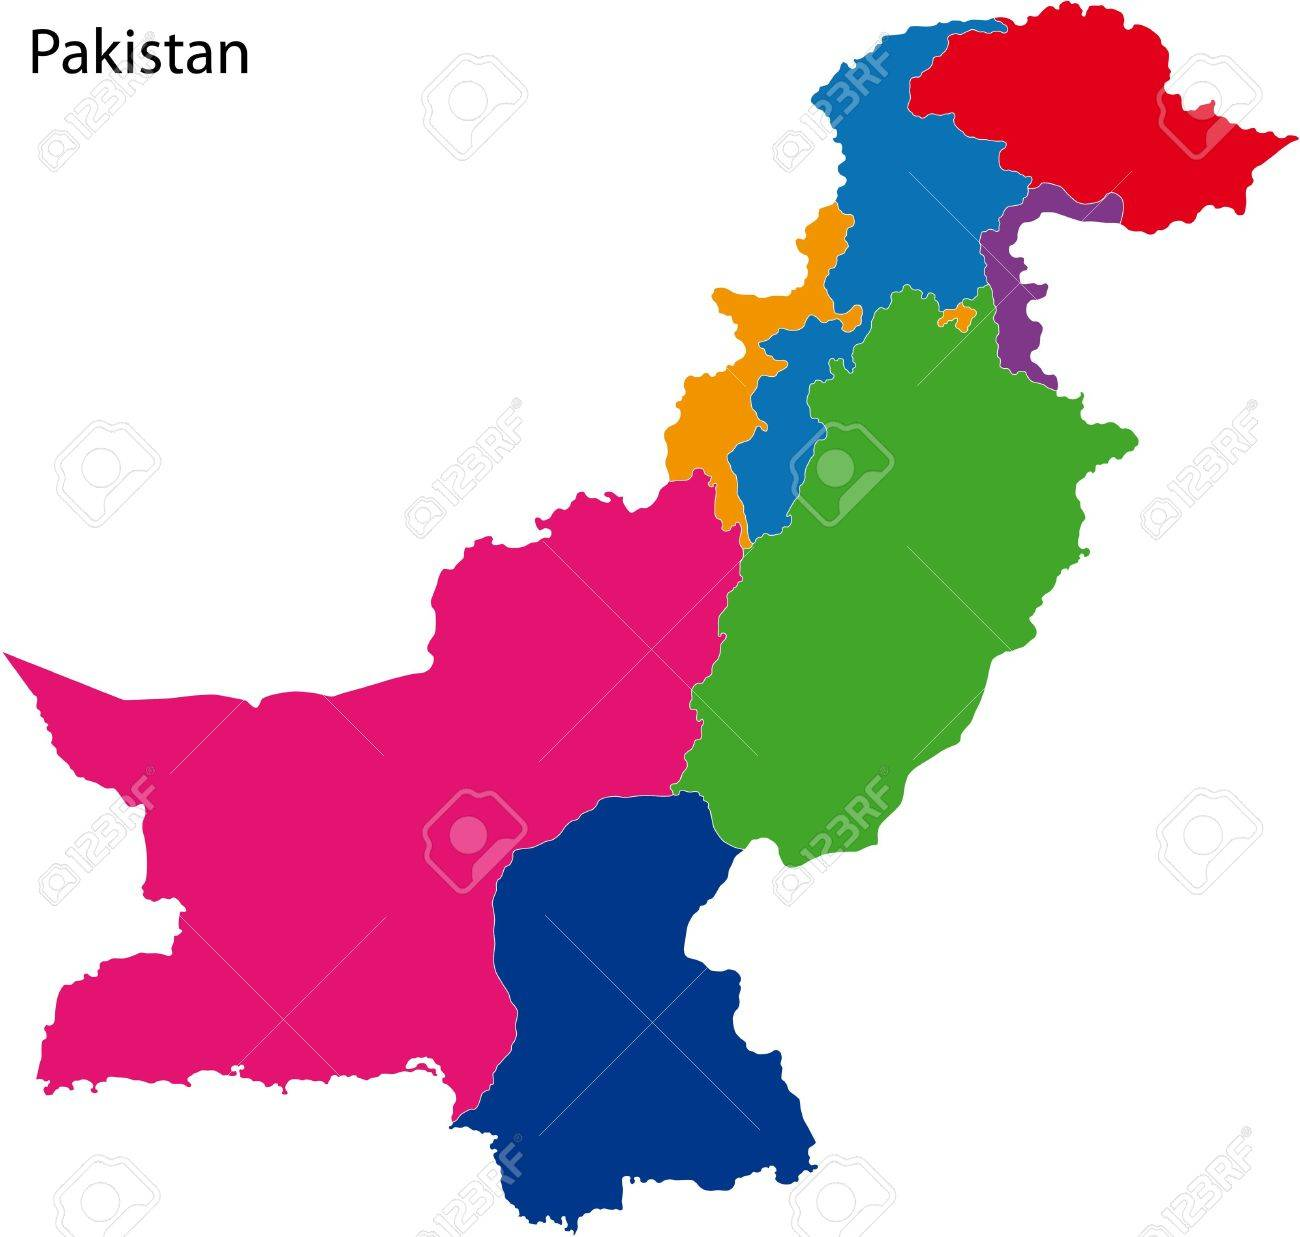 Map Of Administrative Divisions Of Pakistan Royalty Free Cliparts